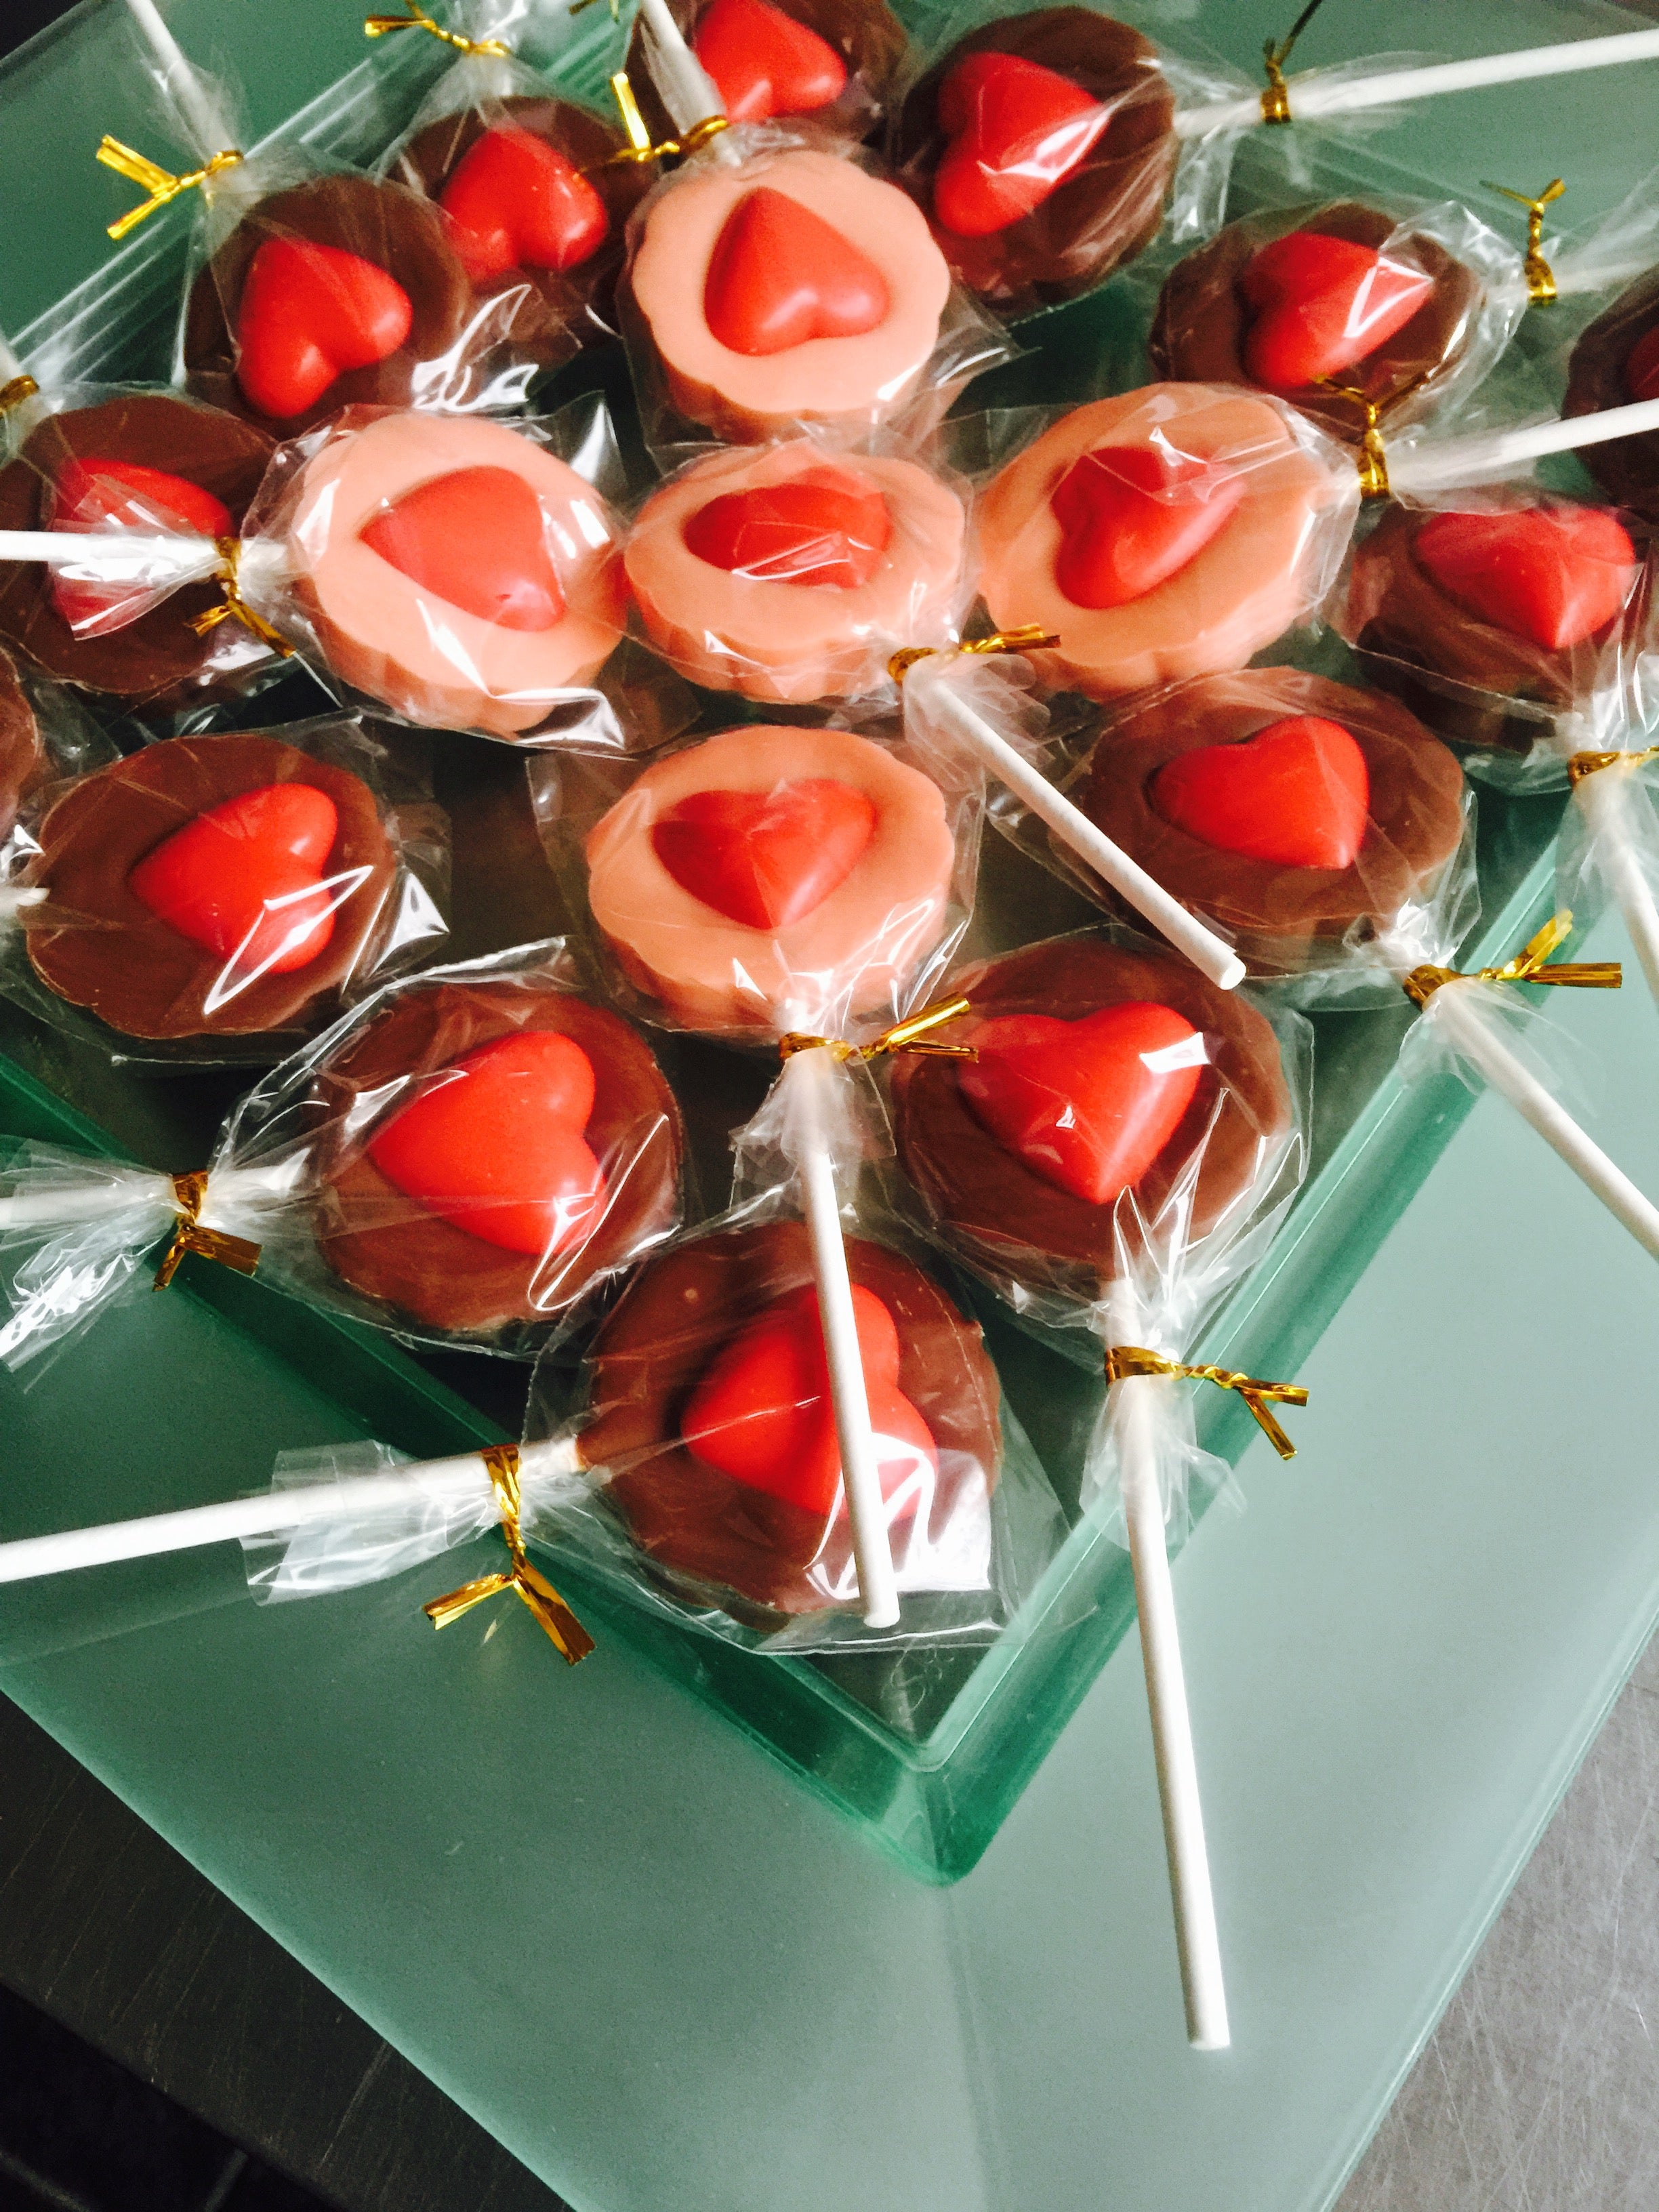 Order online Christmas canapes delivered to your party